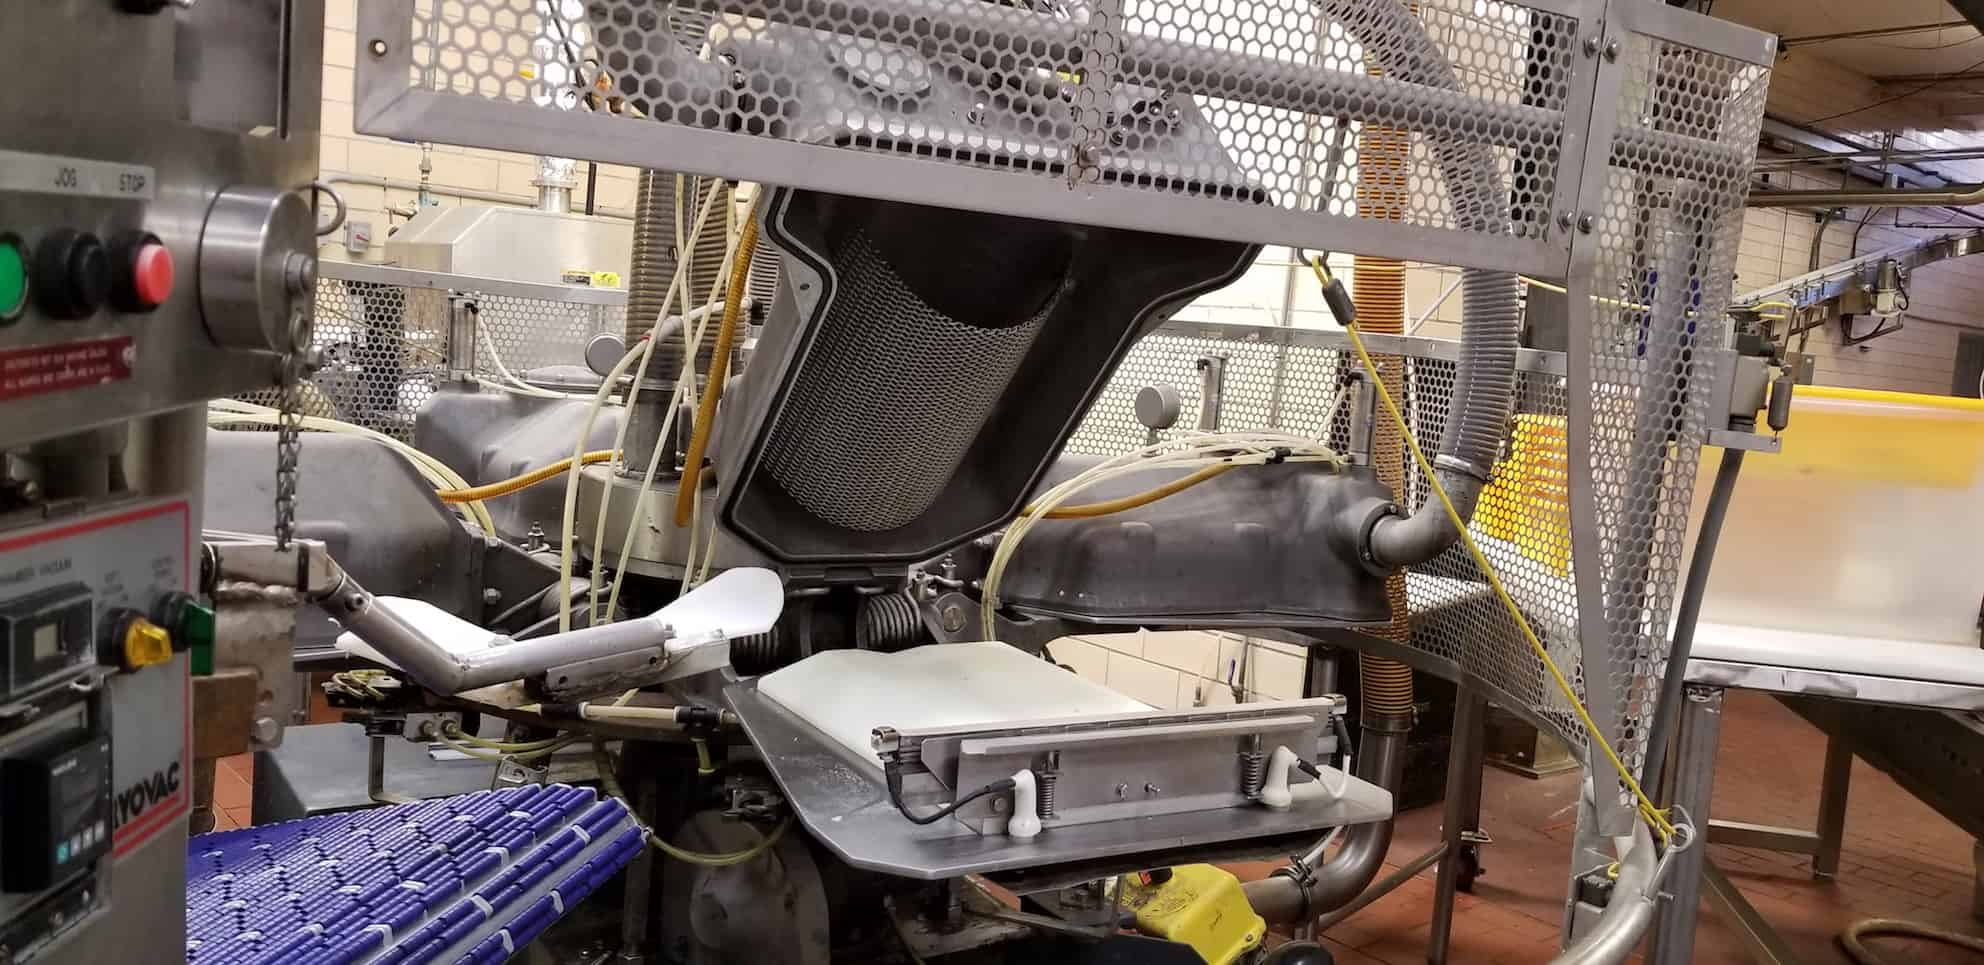 Old Rivers/Cryovac 4-Station Rotary Vacuum Packaging Machine, Model 8610-14, S/N 0724105, 460V 3 Phase, with Controls (Set up to do 5 7 10lb. Cheese), (Capable of Packaging 20lb. with New Plates-Not Included), (Vacuum Pump Not Included)